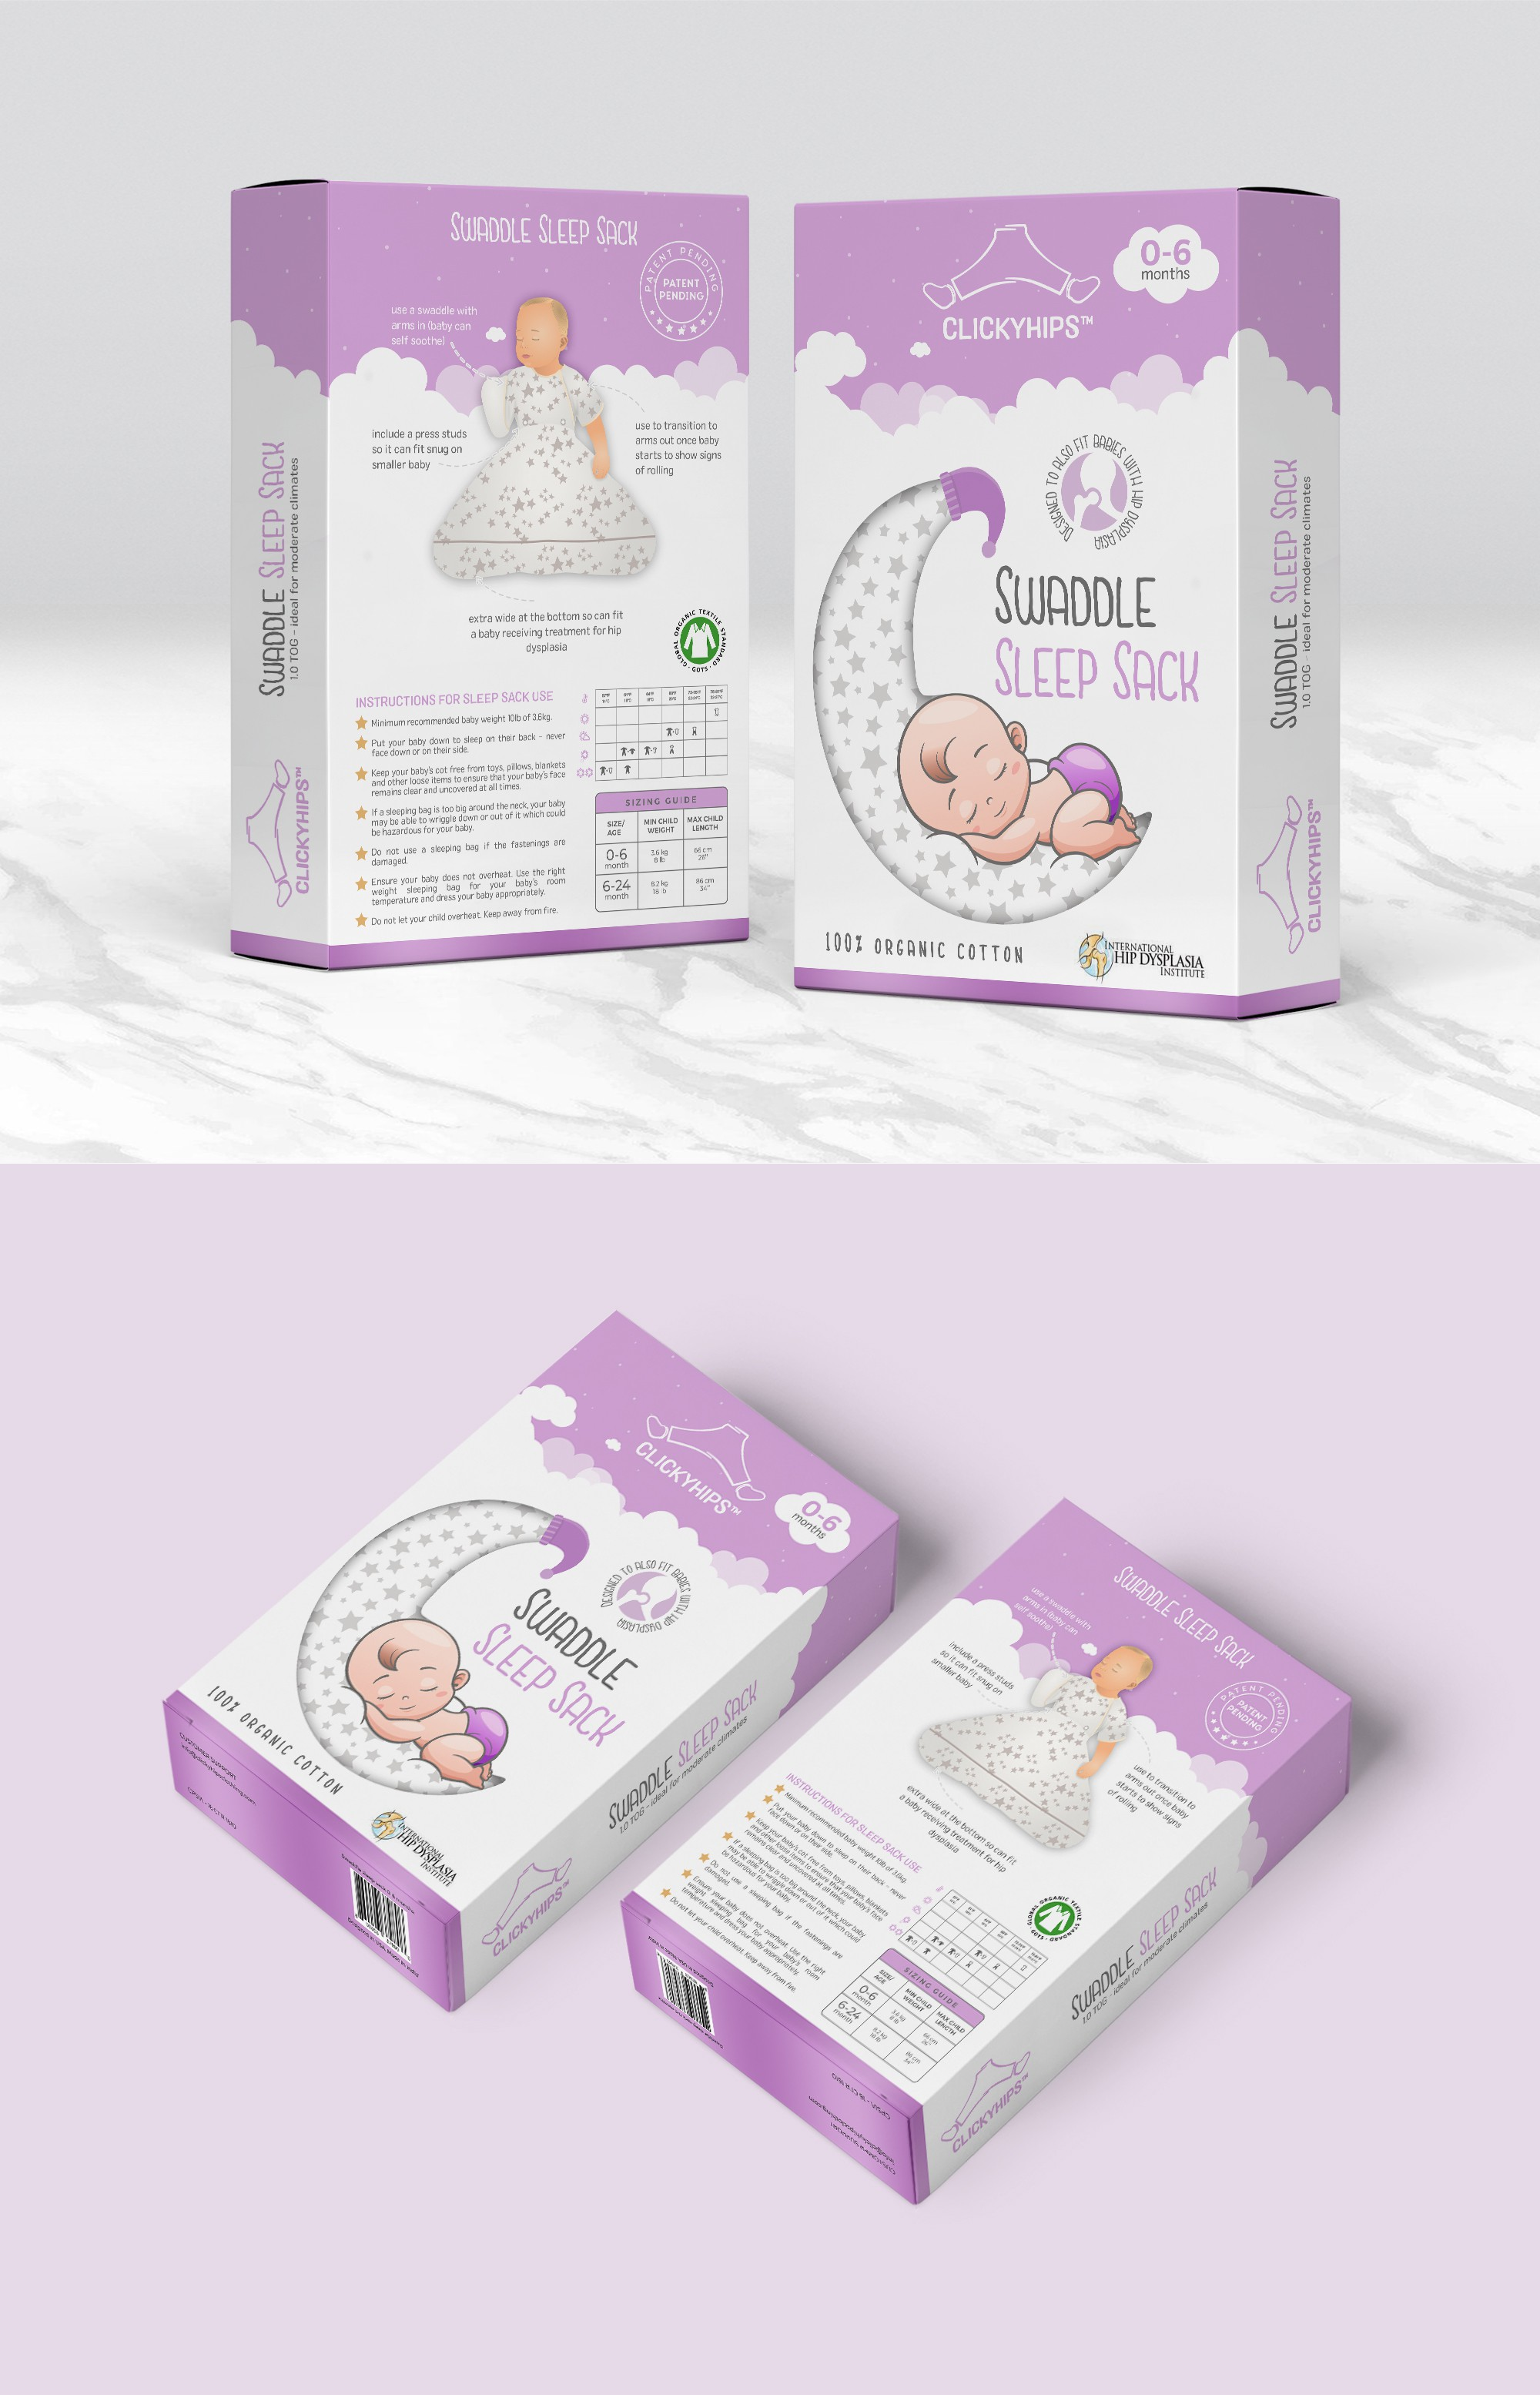 Package to be designed for Swaddle sleep sack